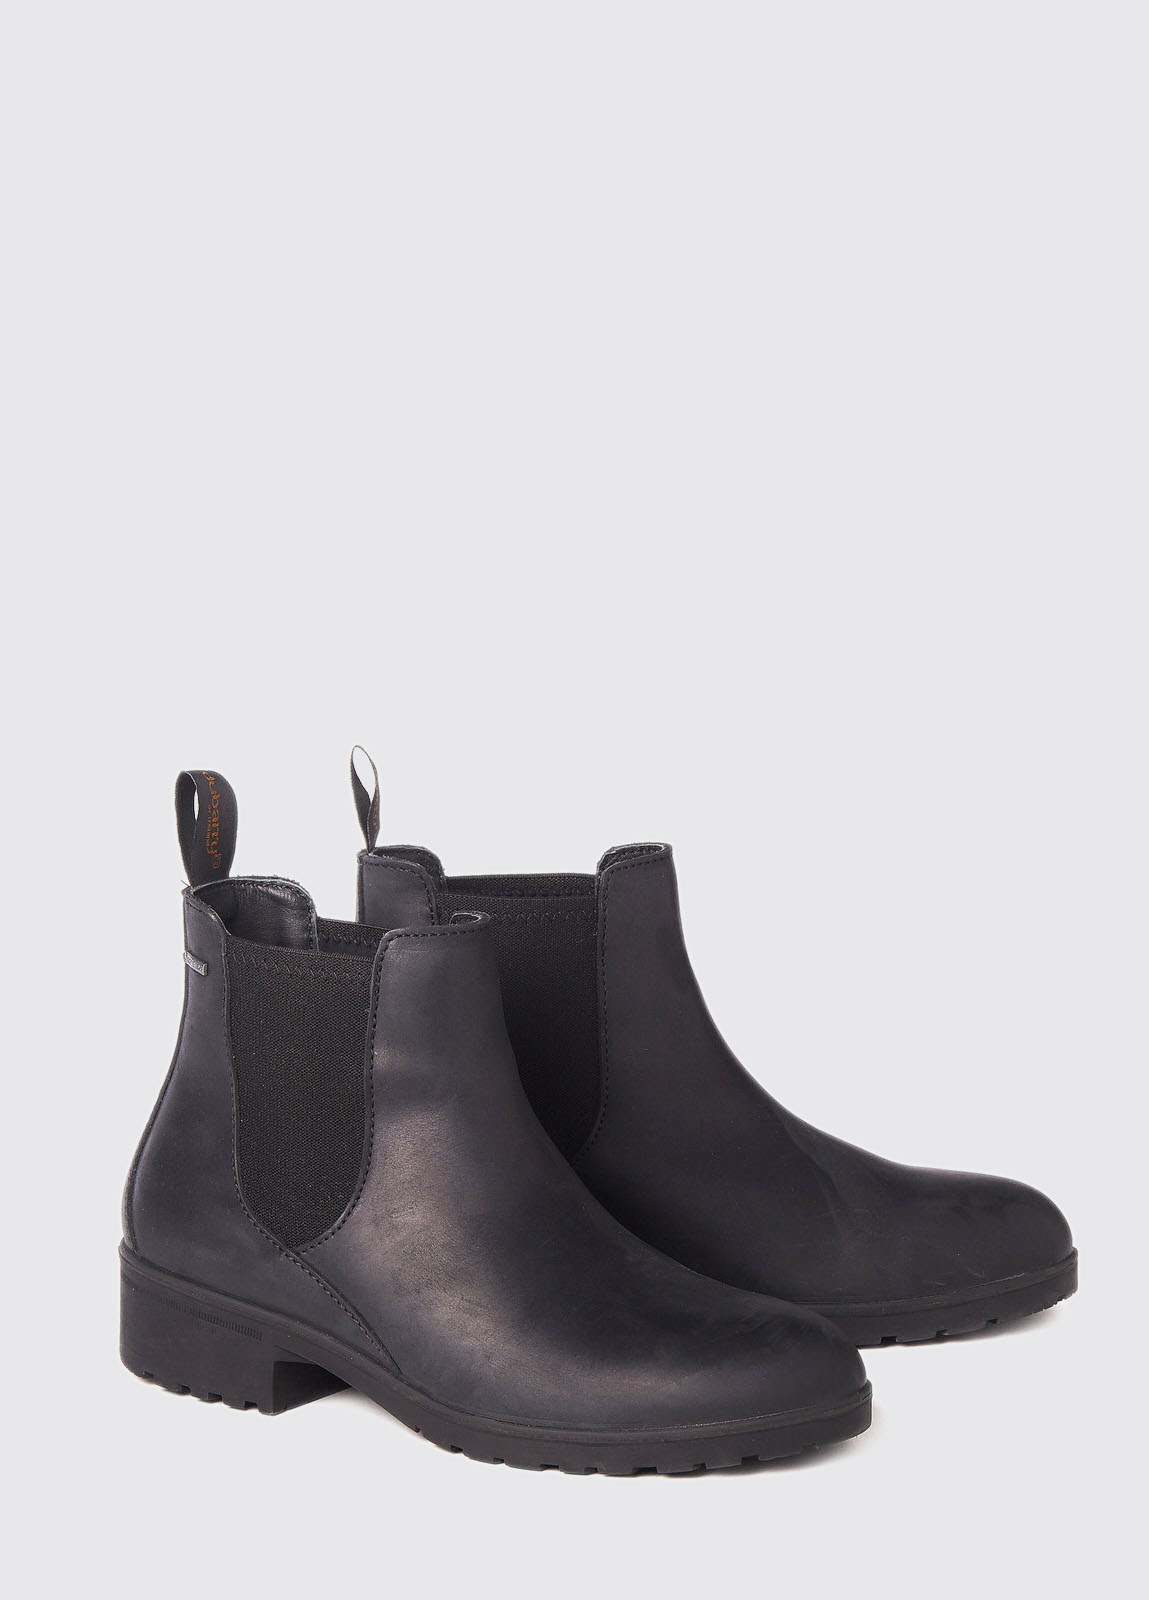 Waterford Country Boot - Black